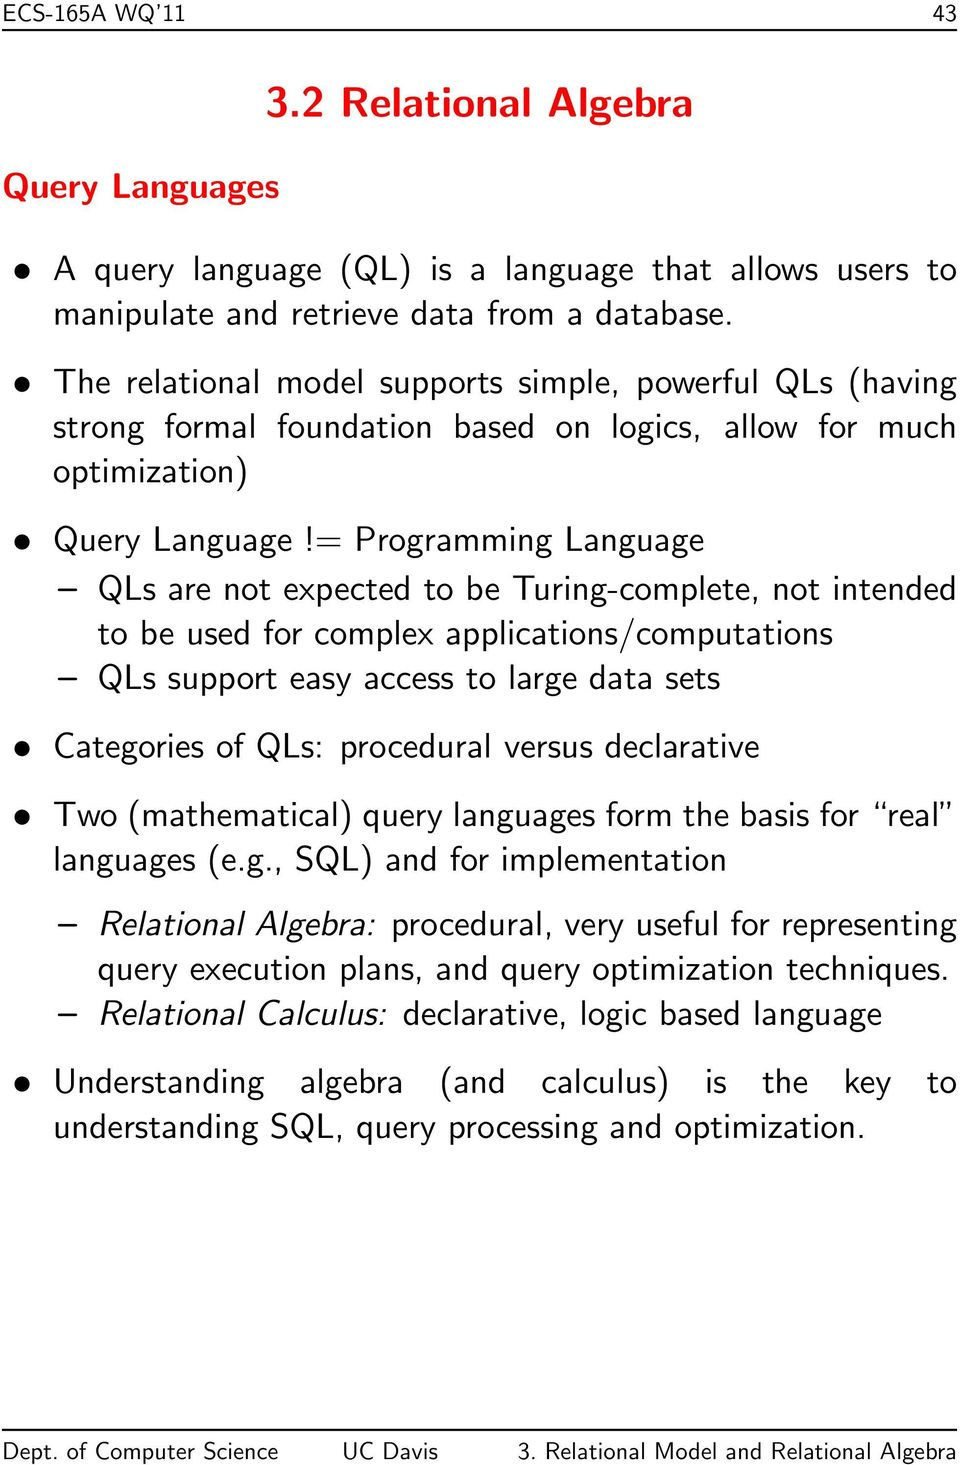 = Programming Language QLs are not expected to be Turing-complete, not intended to be used for complex applications/computations QLs support easy access to large data sets Categories of QLs: